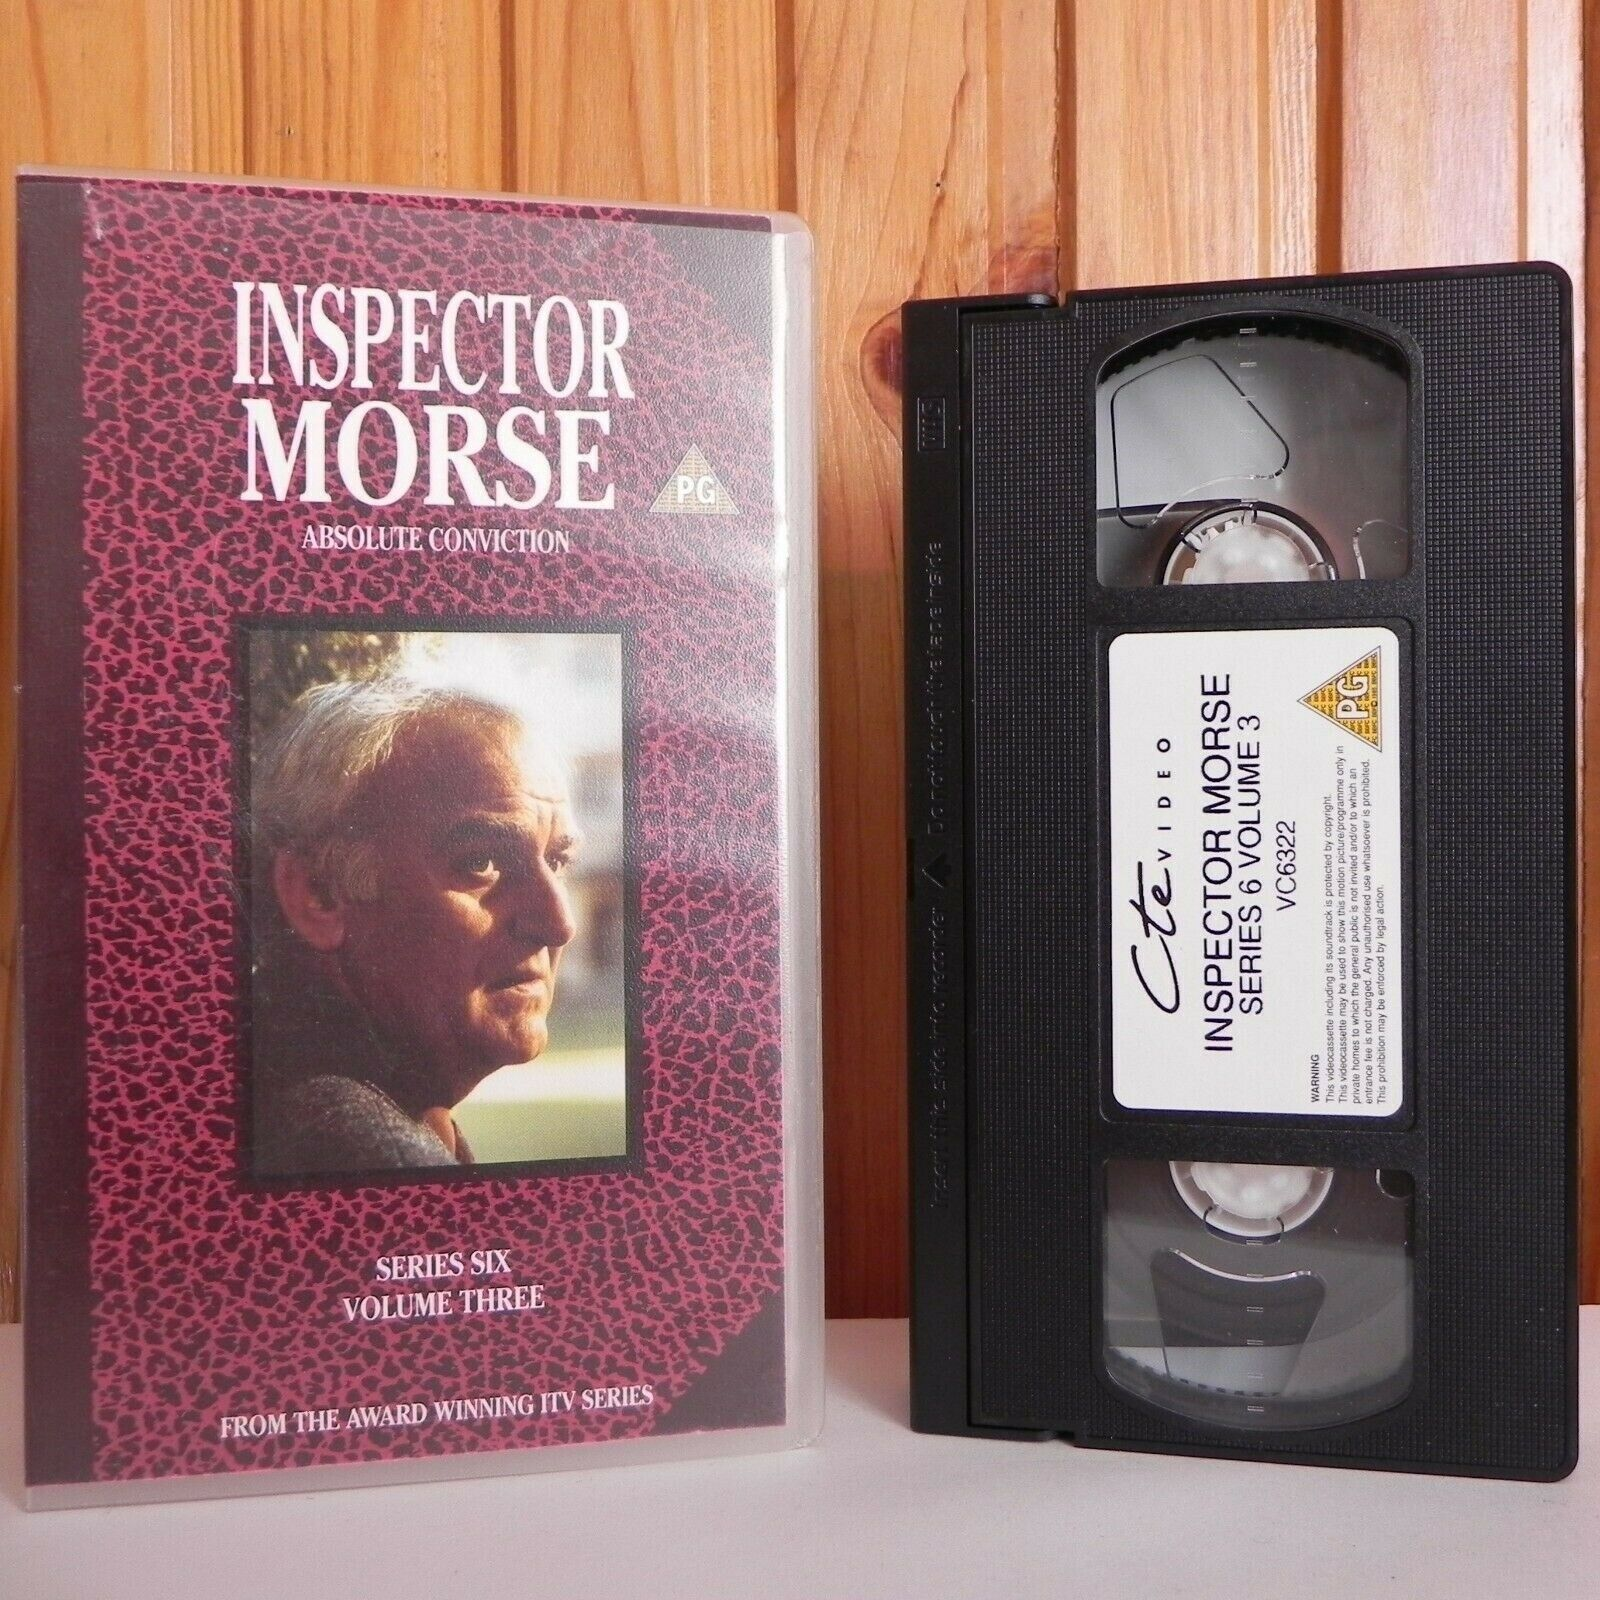 Absolute, Conviction, Inspector, No, PAL, Series, TV, TV Shows, VHS, Volume